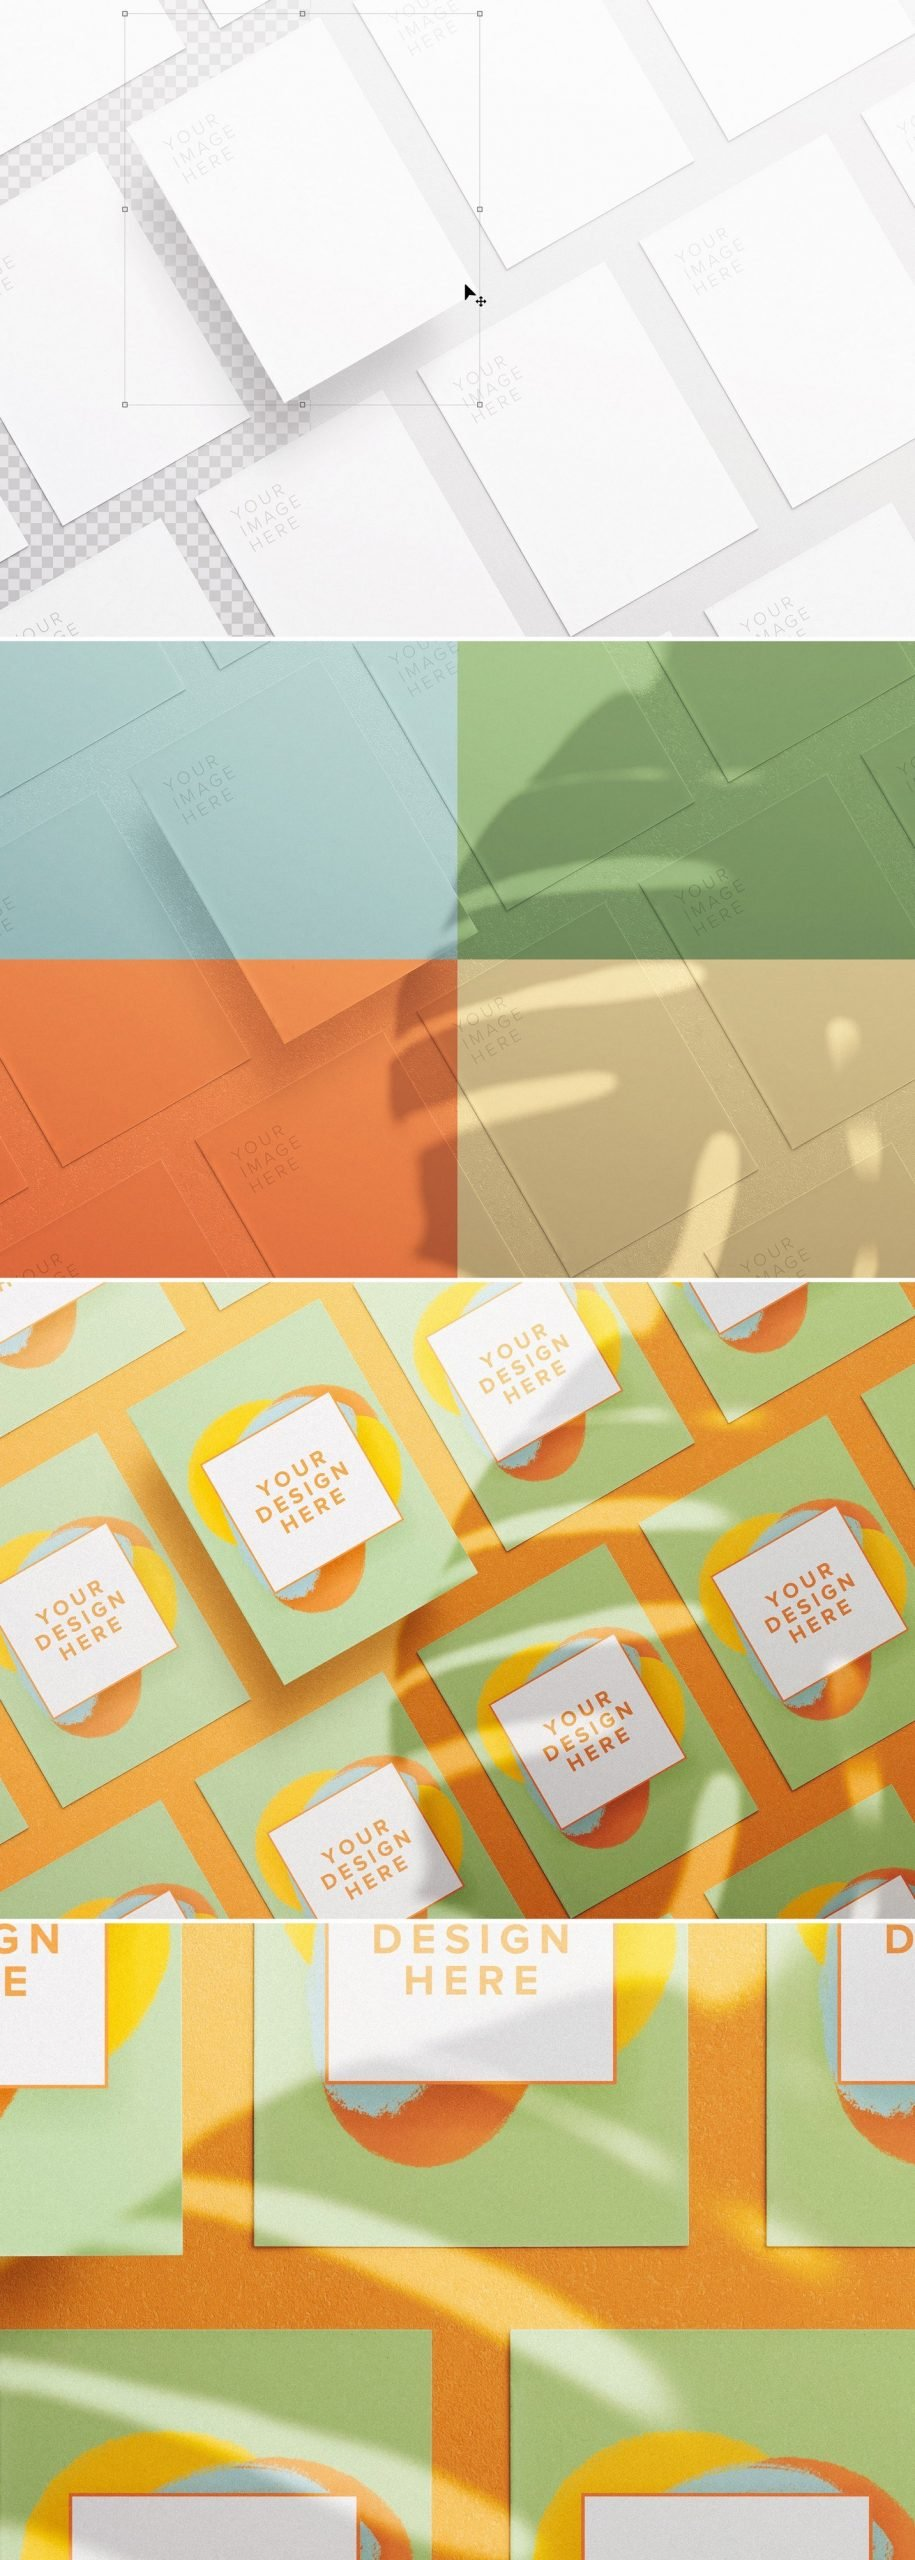 flyer diagonal layout mockup preview1 1 scaled